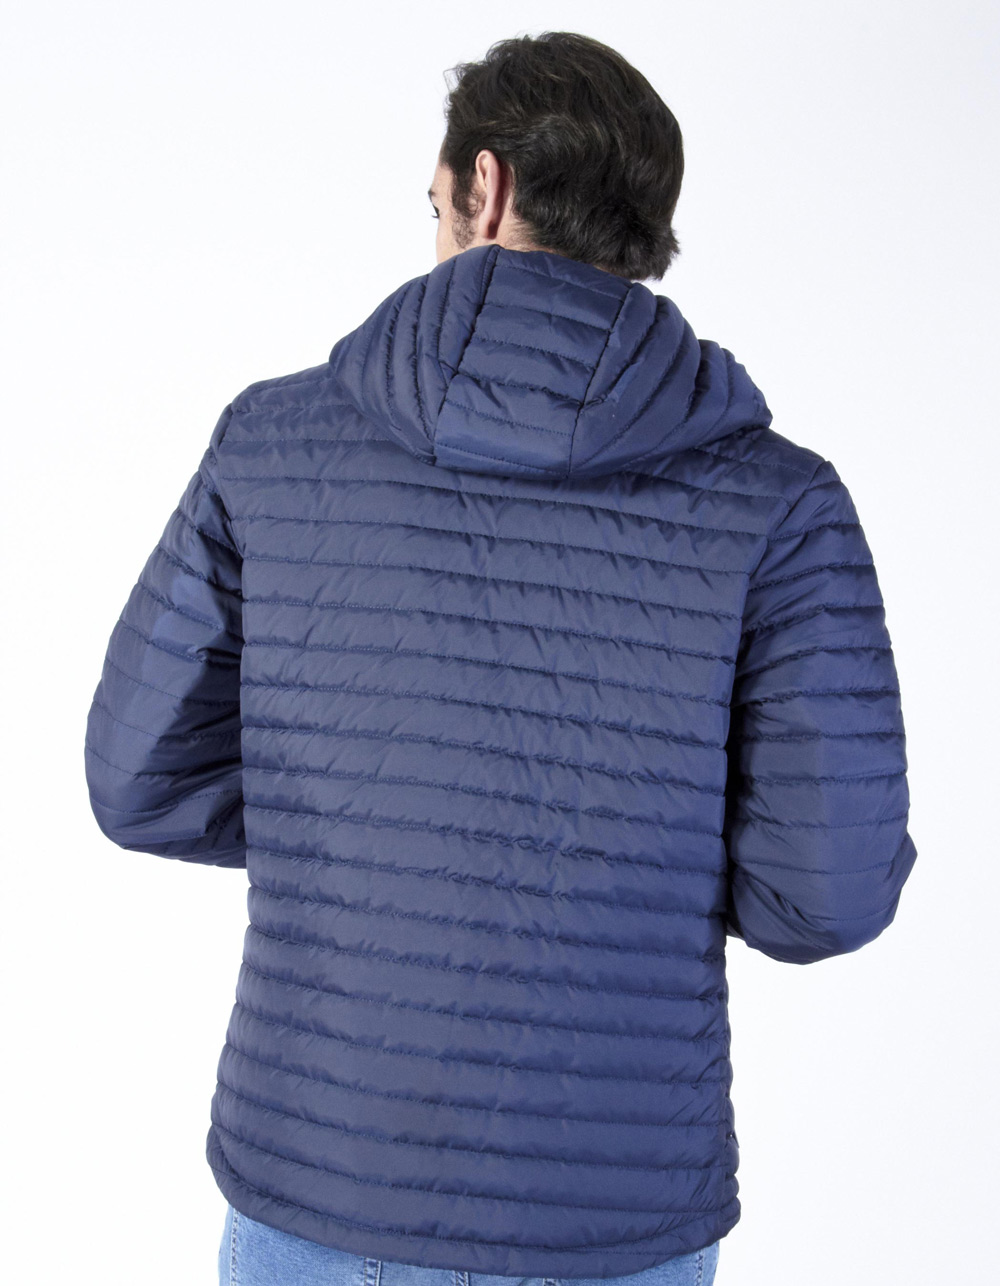 Blue hood piumino - Backside